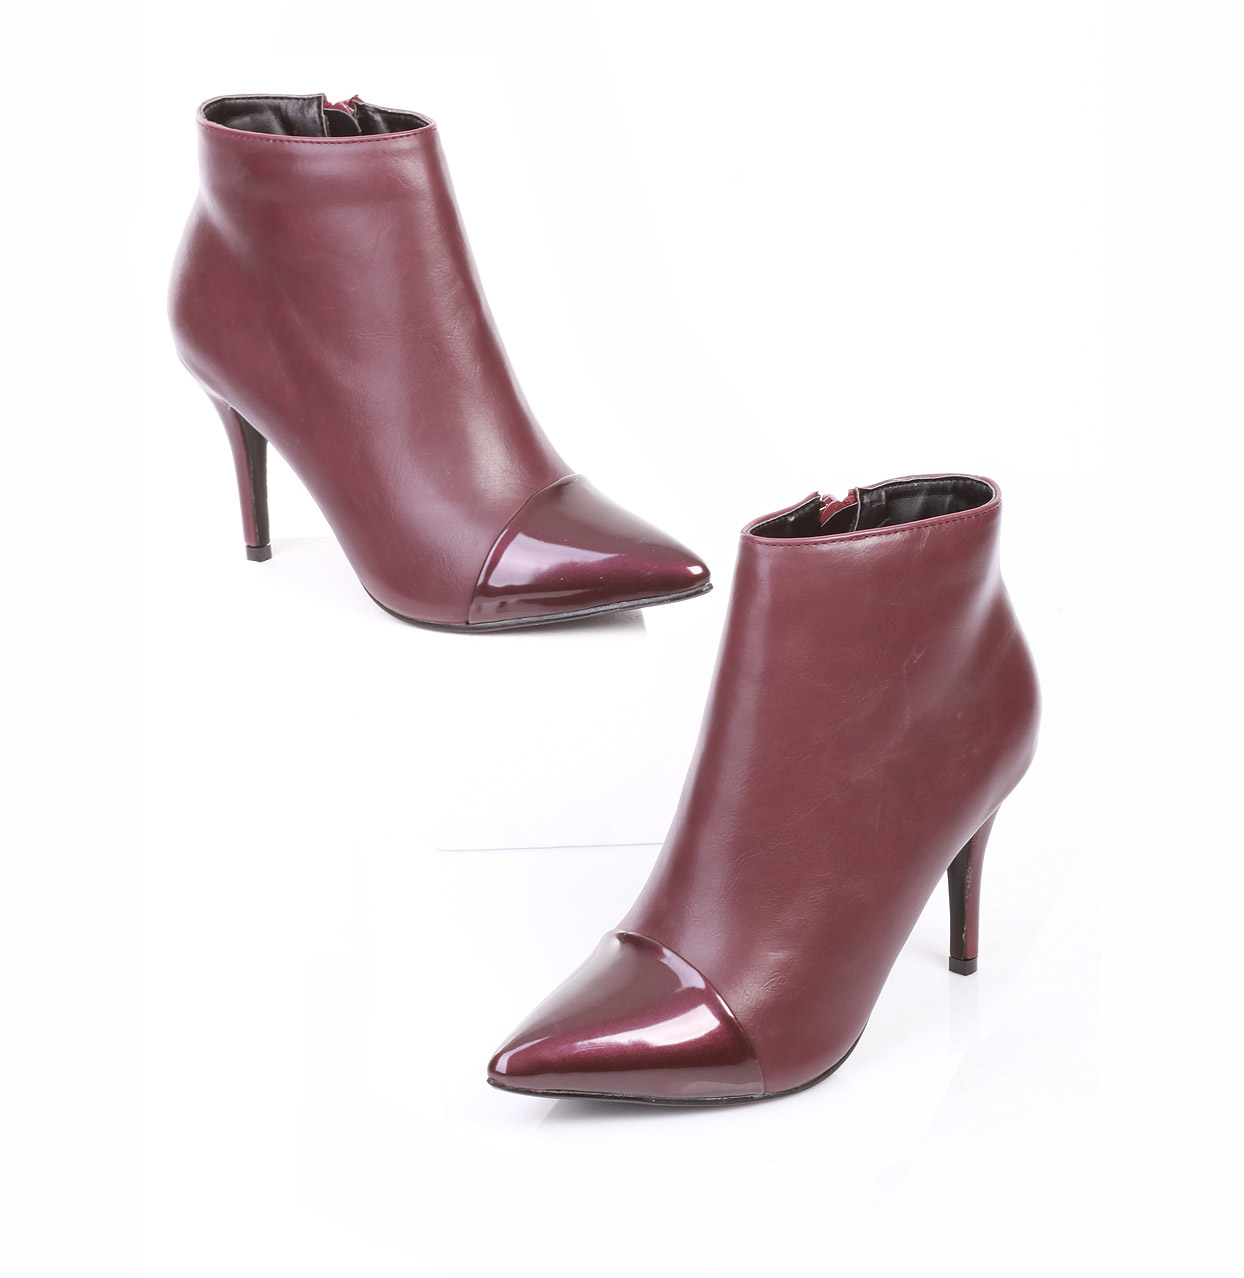 Burgundy Red High Heel Boots. Marsala Boots. Marsala Leather Boots. Heel Boots. Marsala Red Boots. Red Leather Boots. Winter Boots.